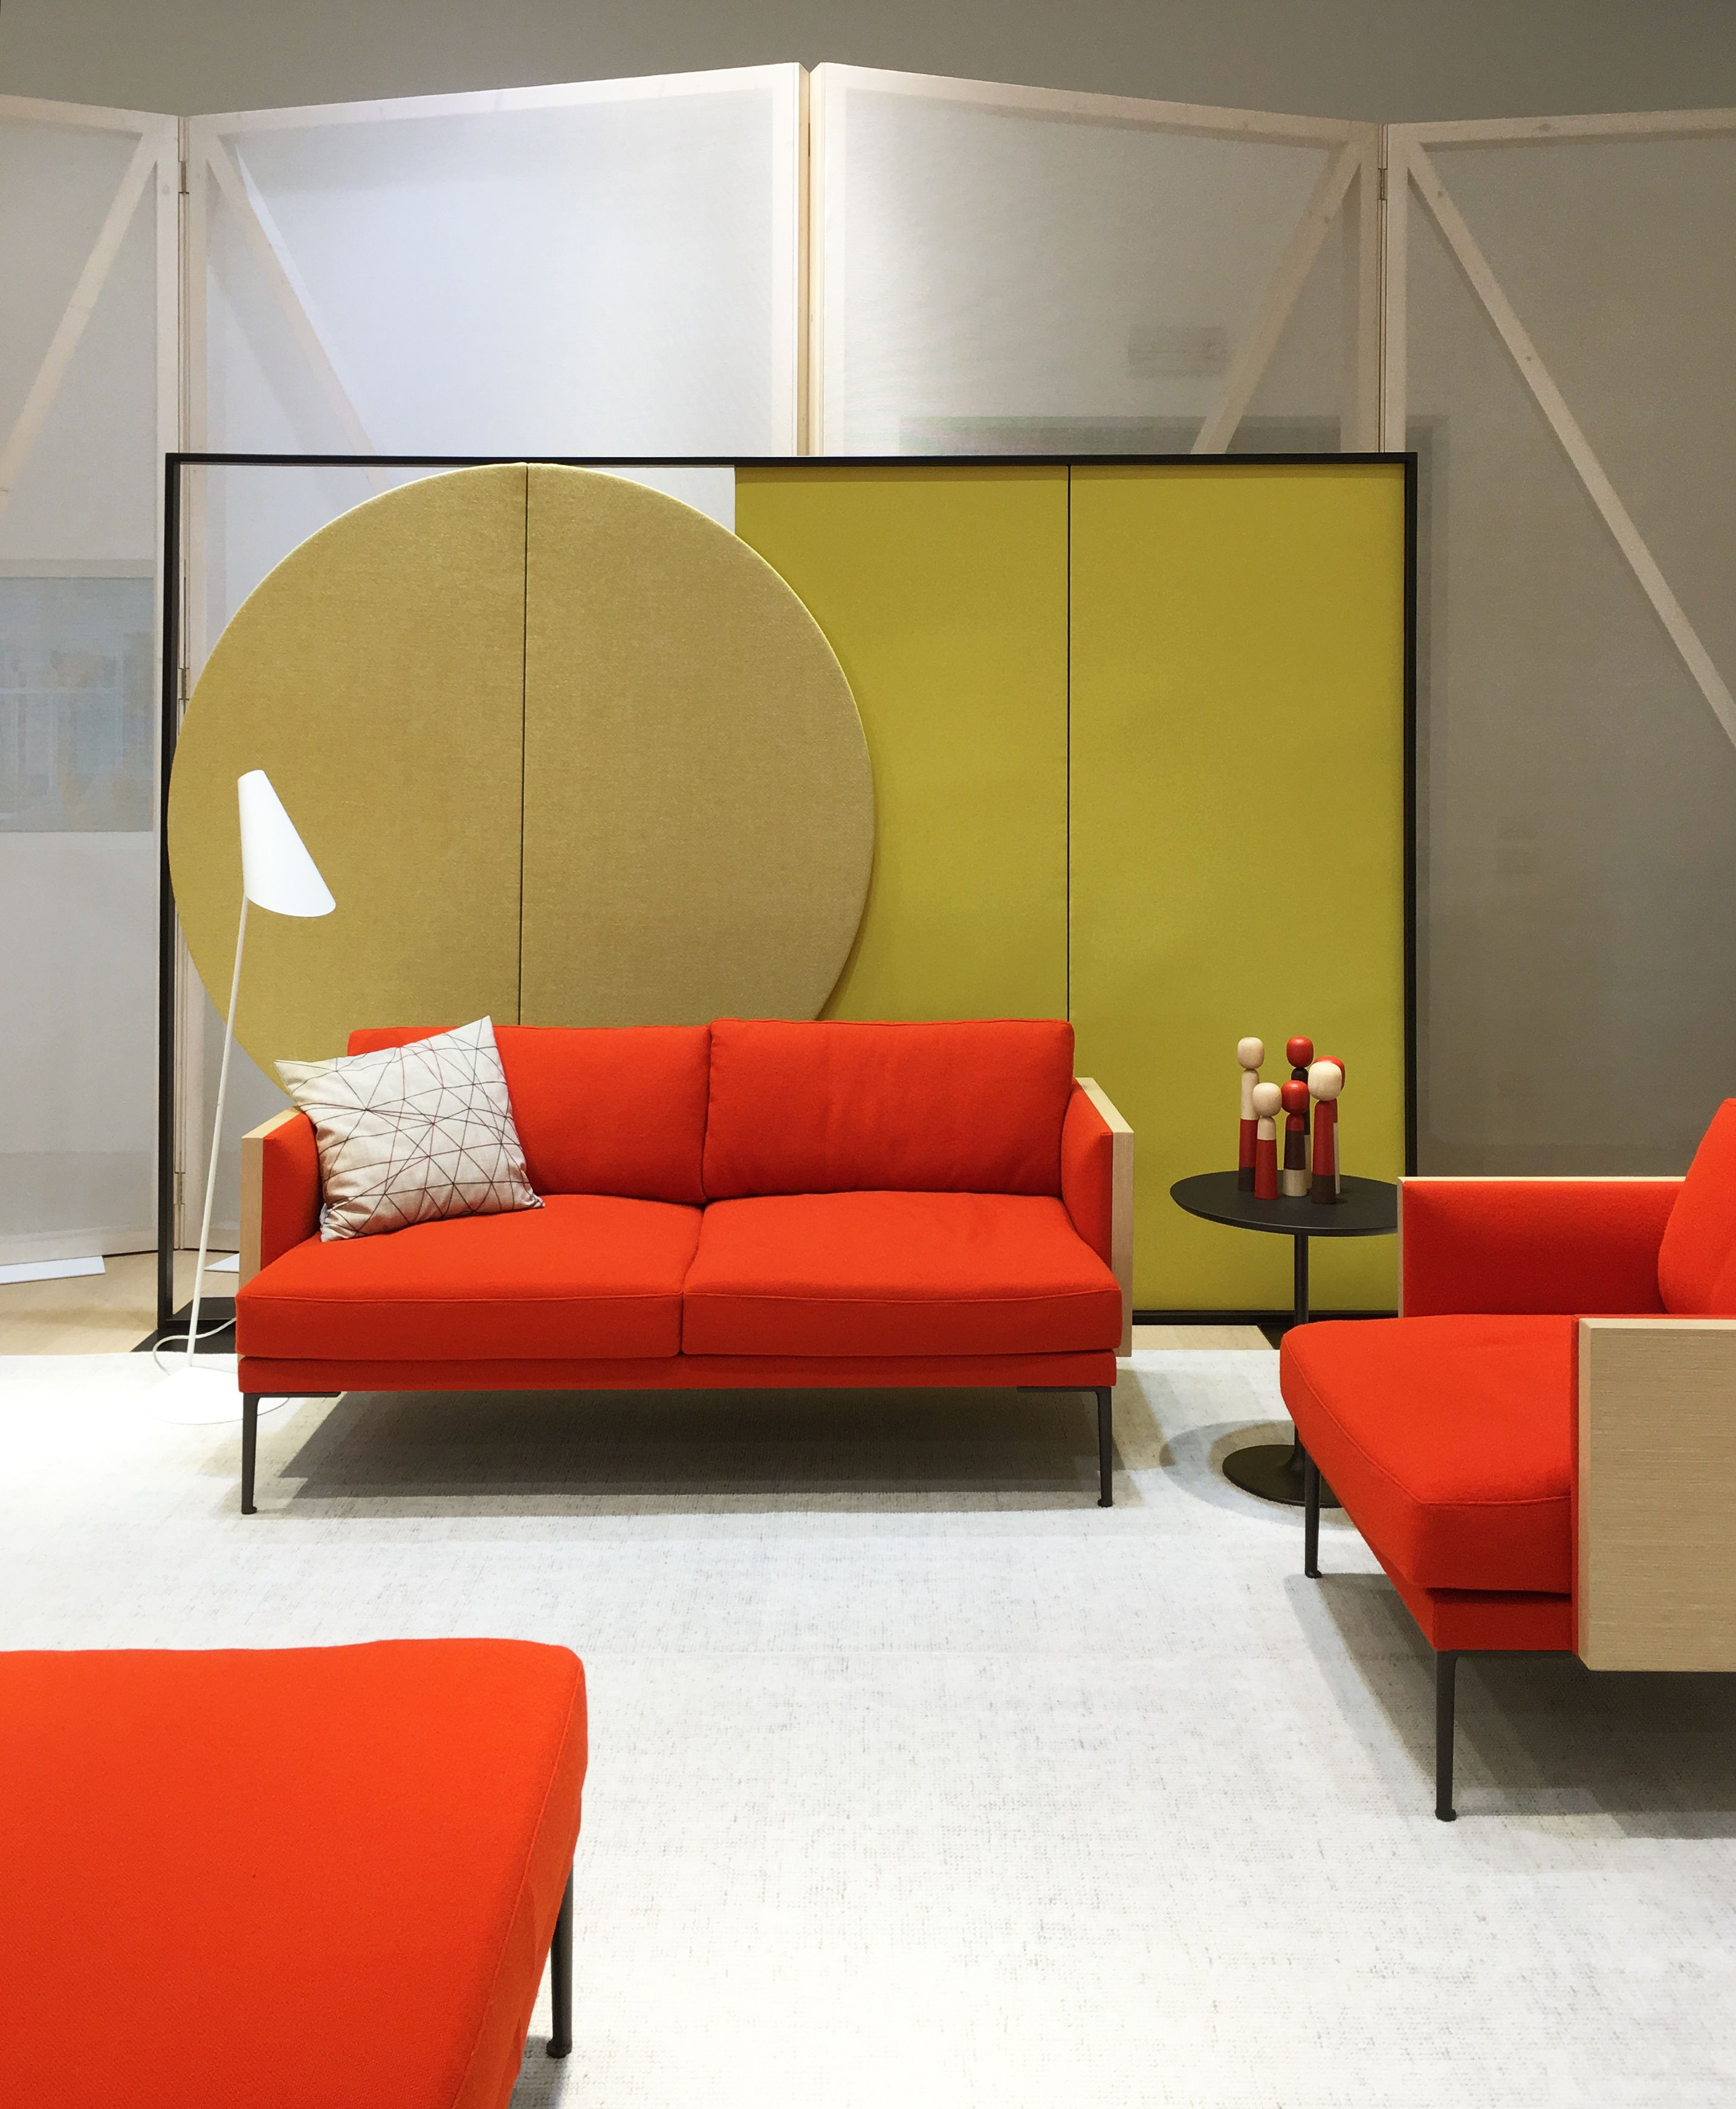 Parentesit acoustic panels and Steeve sofa by Arper Best of Year ...